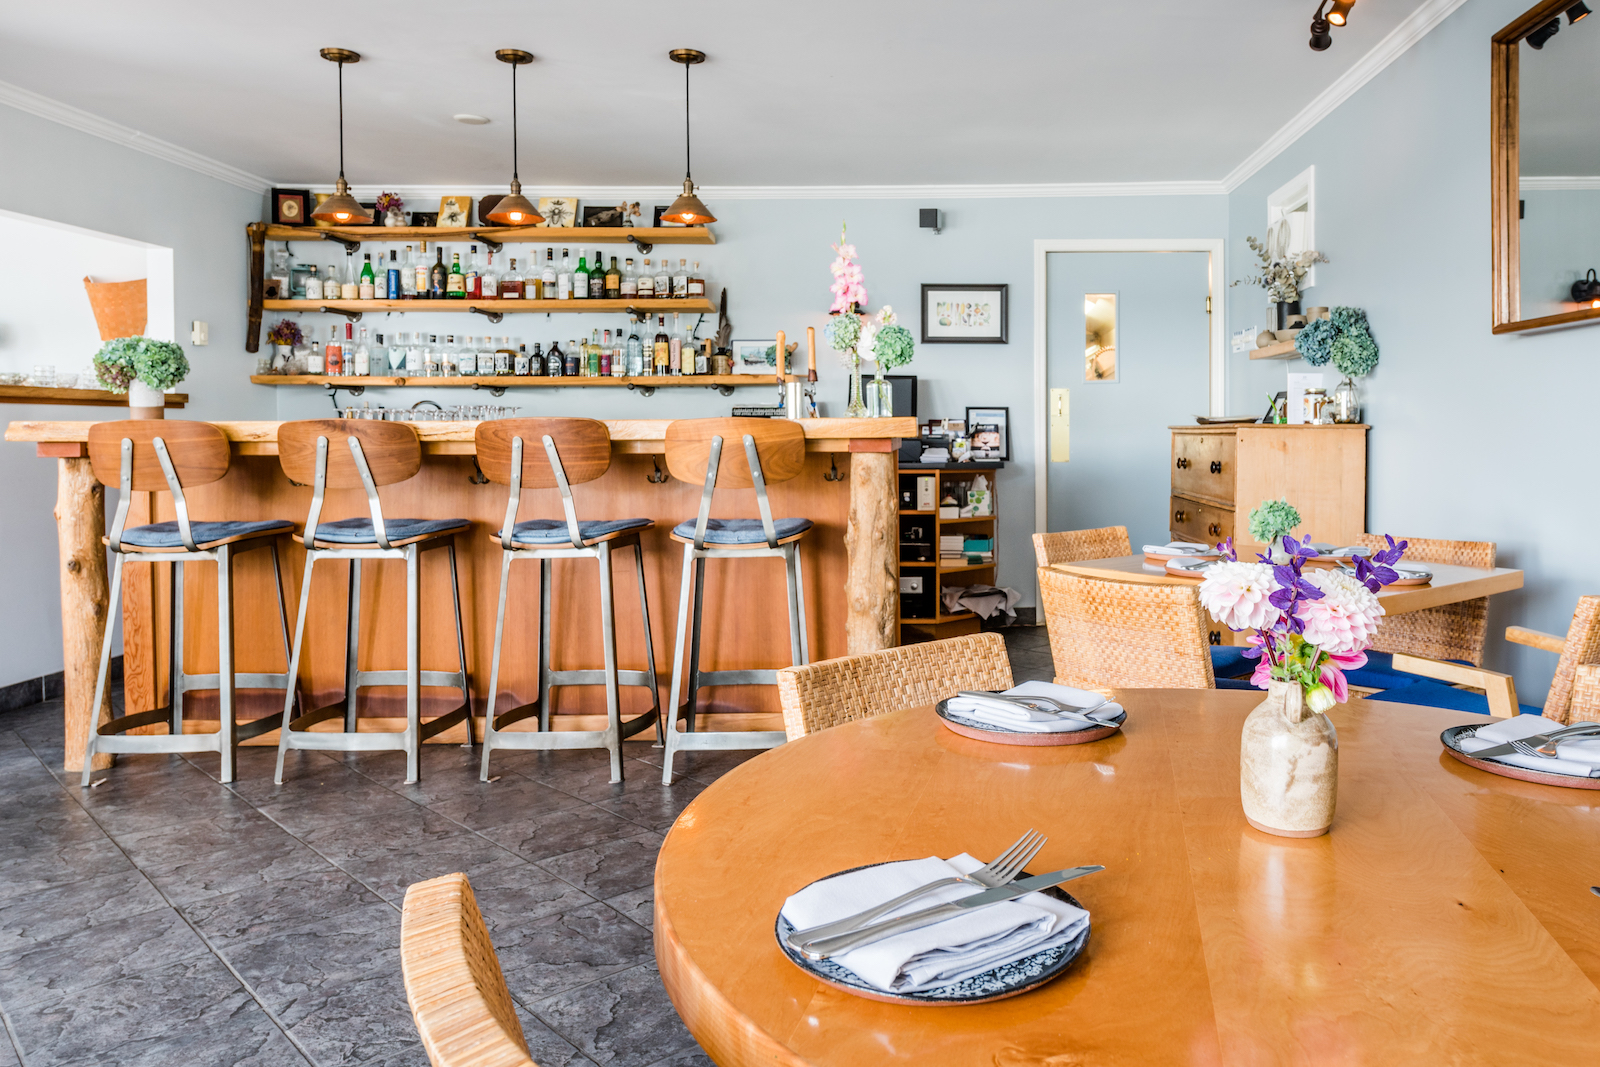 Sooke's Celebrated Slow Food Restaurant 'Wild Mountain' Seeks P/T or F/T Cook